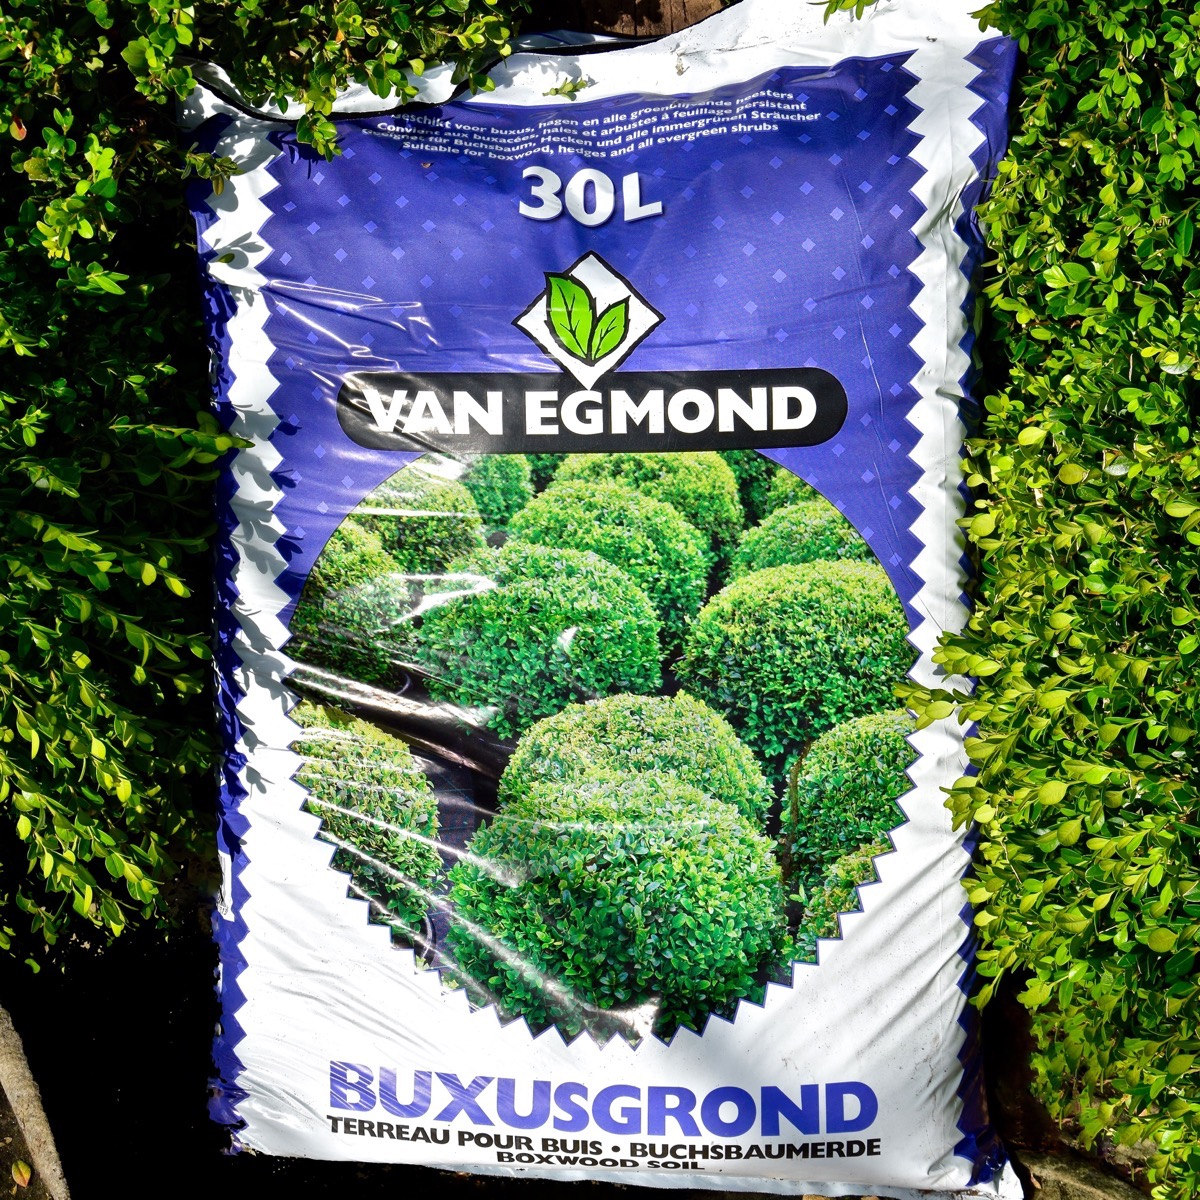 Buxus grond